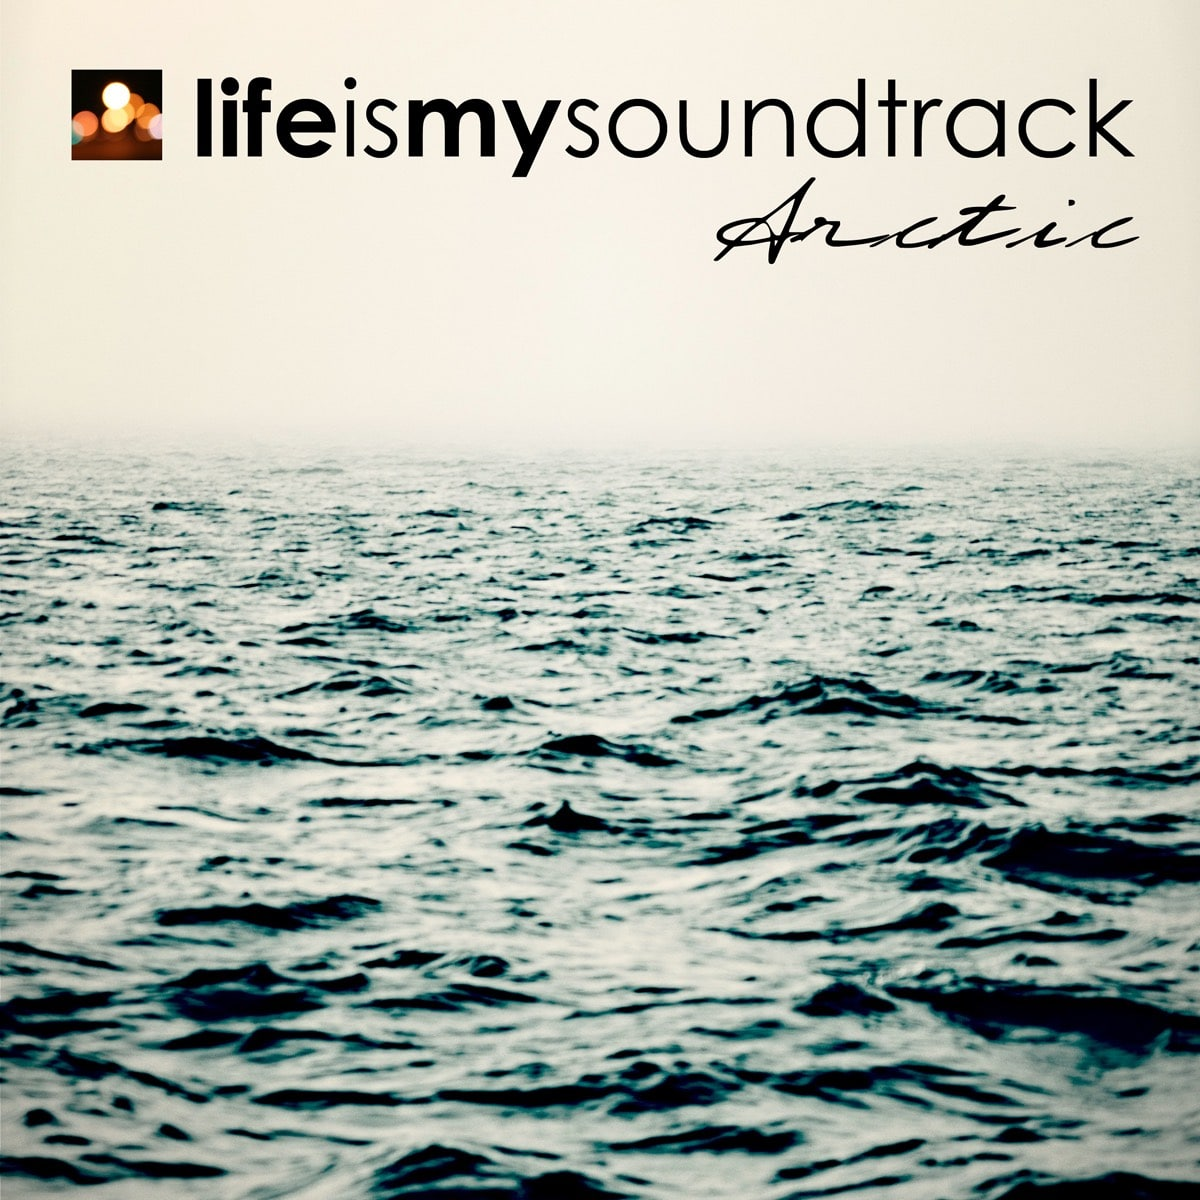 The album Arctic by Life Is My Soundtrack - Synthesizers combine with icy beats in this tribute to the Arctic